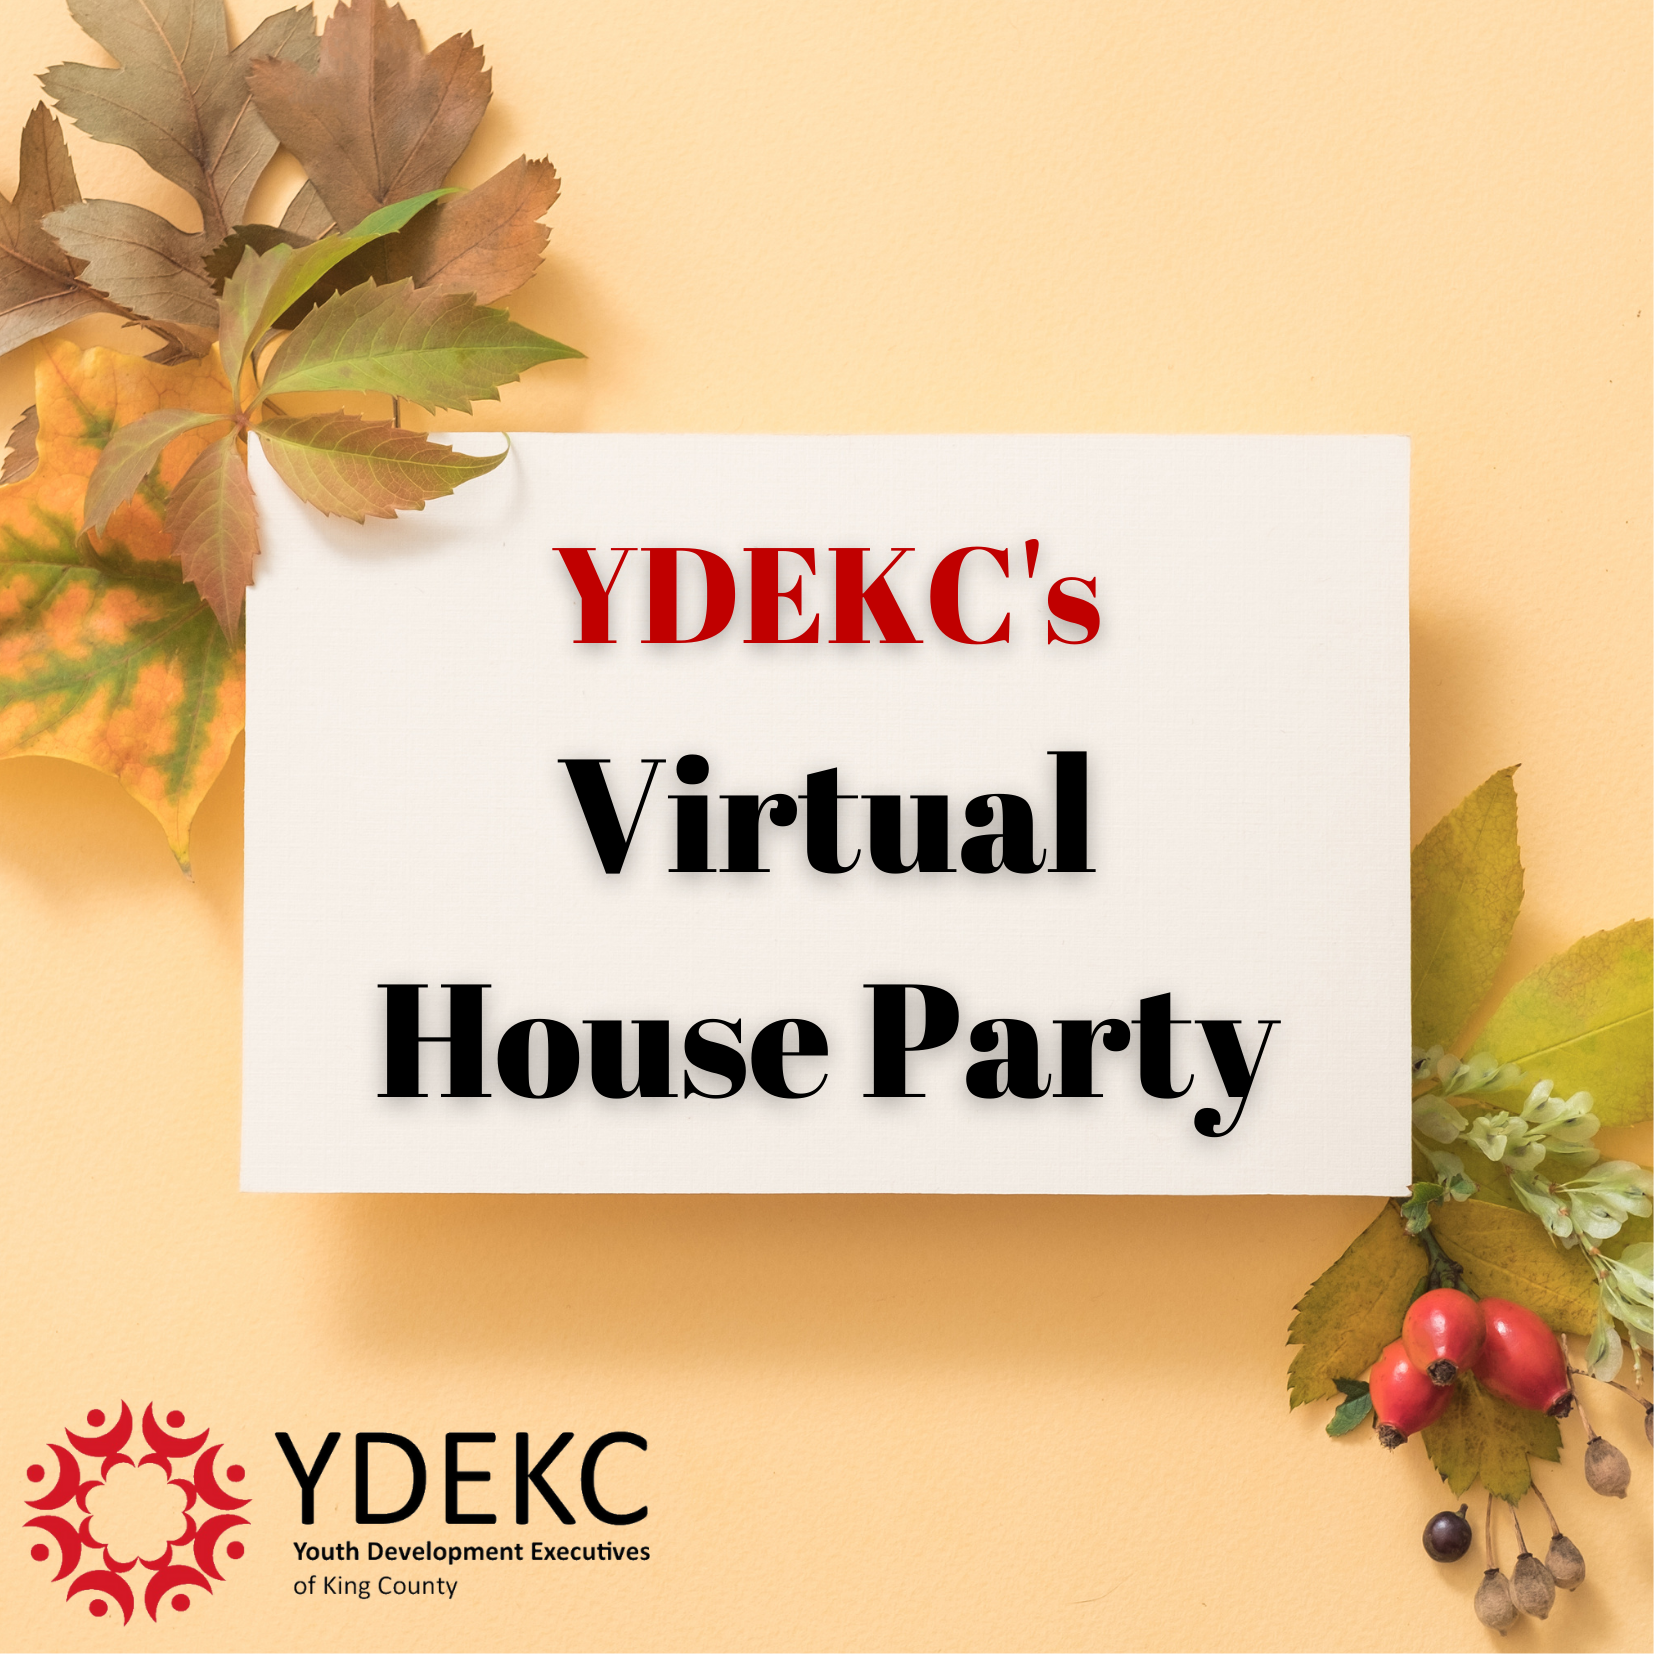 YDEKC's Virtual House Party